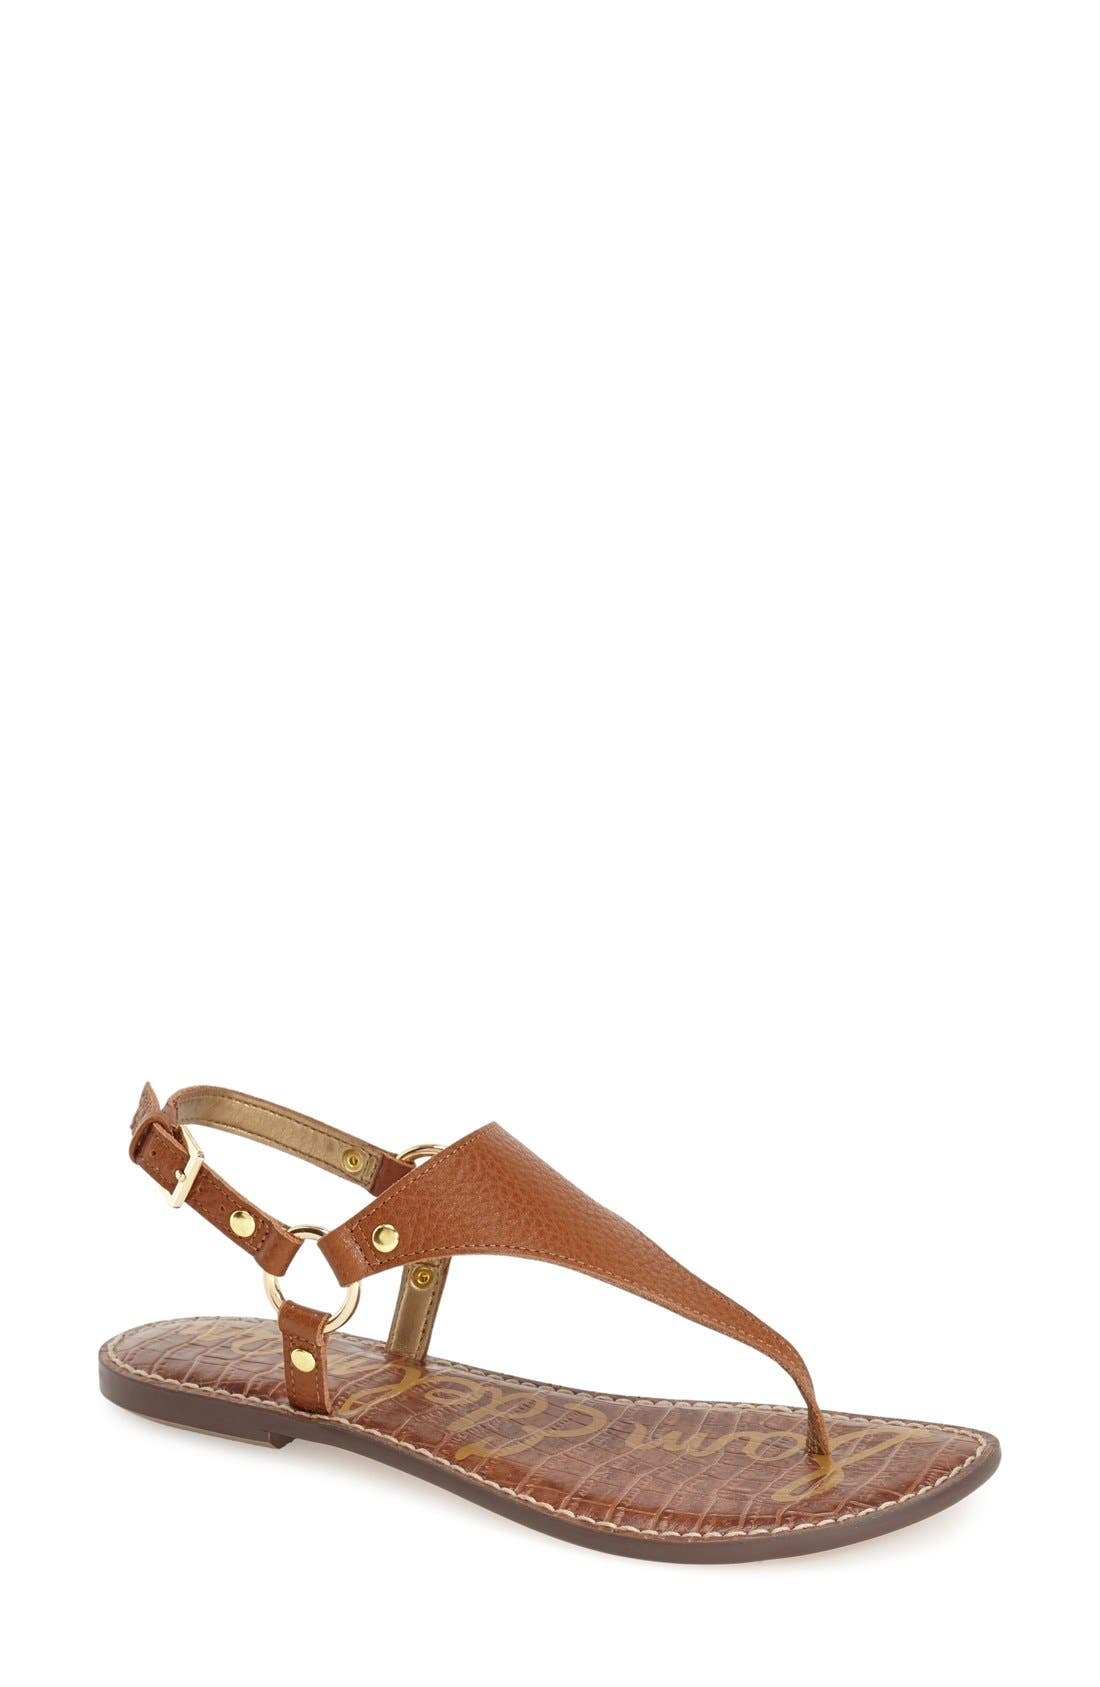 Greta Sandal,                             Main thumbnail 1, color,                             SOFT SADDLE LEATHER